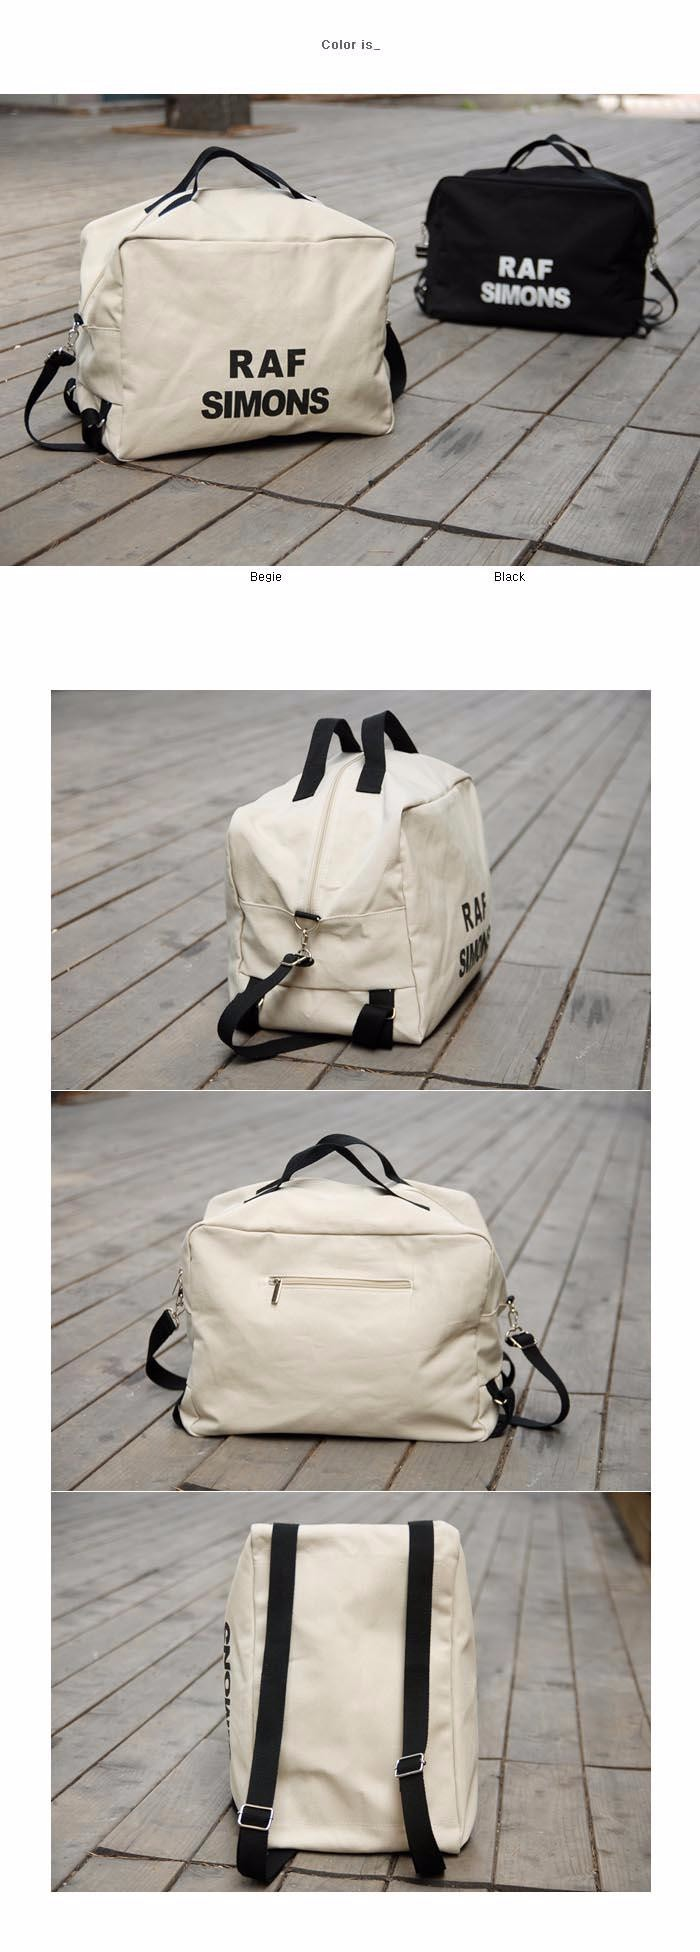 student travel bags 1